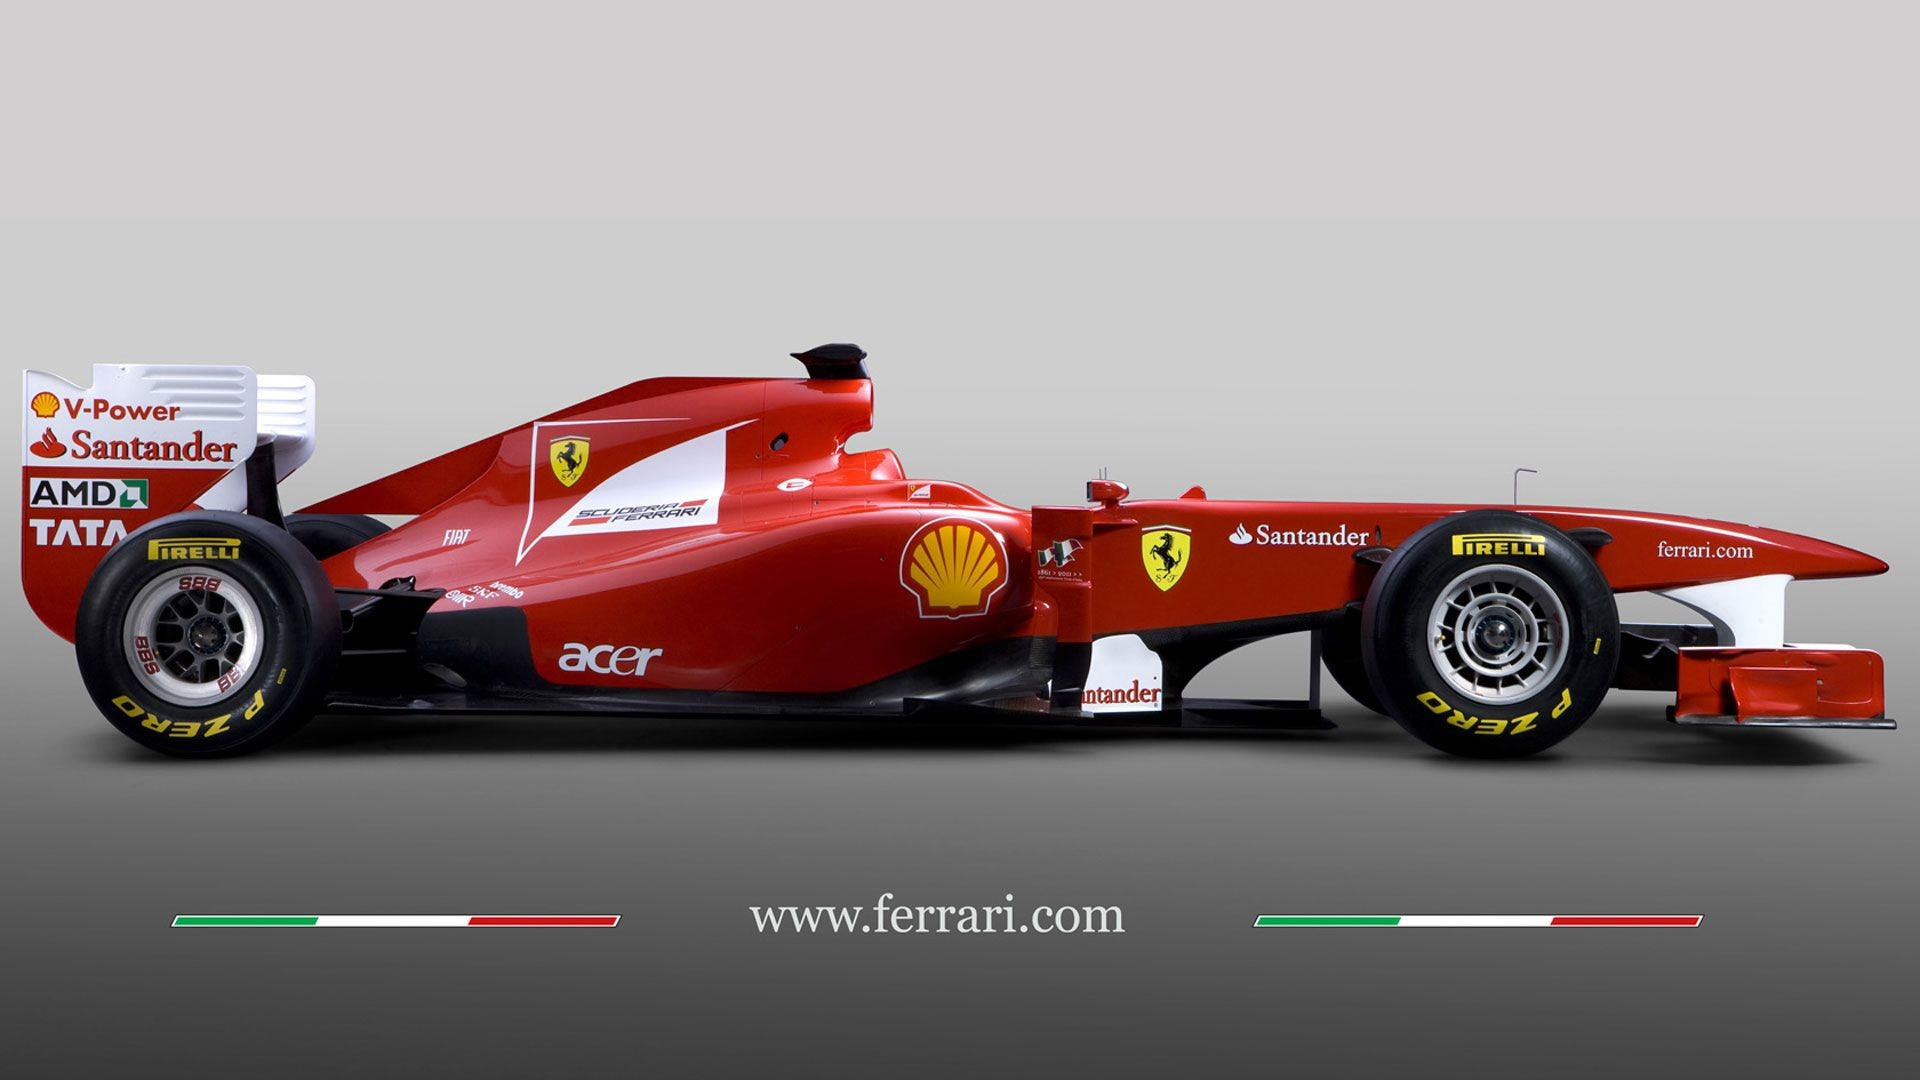 F1 Mercedes Wallpaper Picture #kfW | Cars | Pinterest | Wallpaper pictures  and Cars